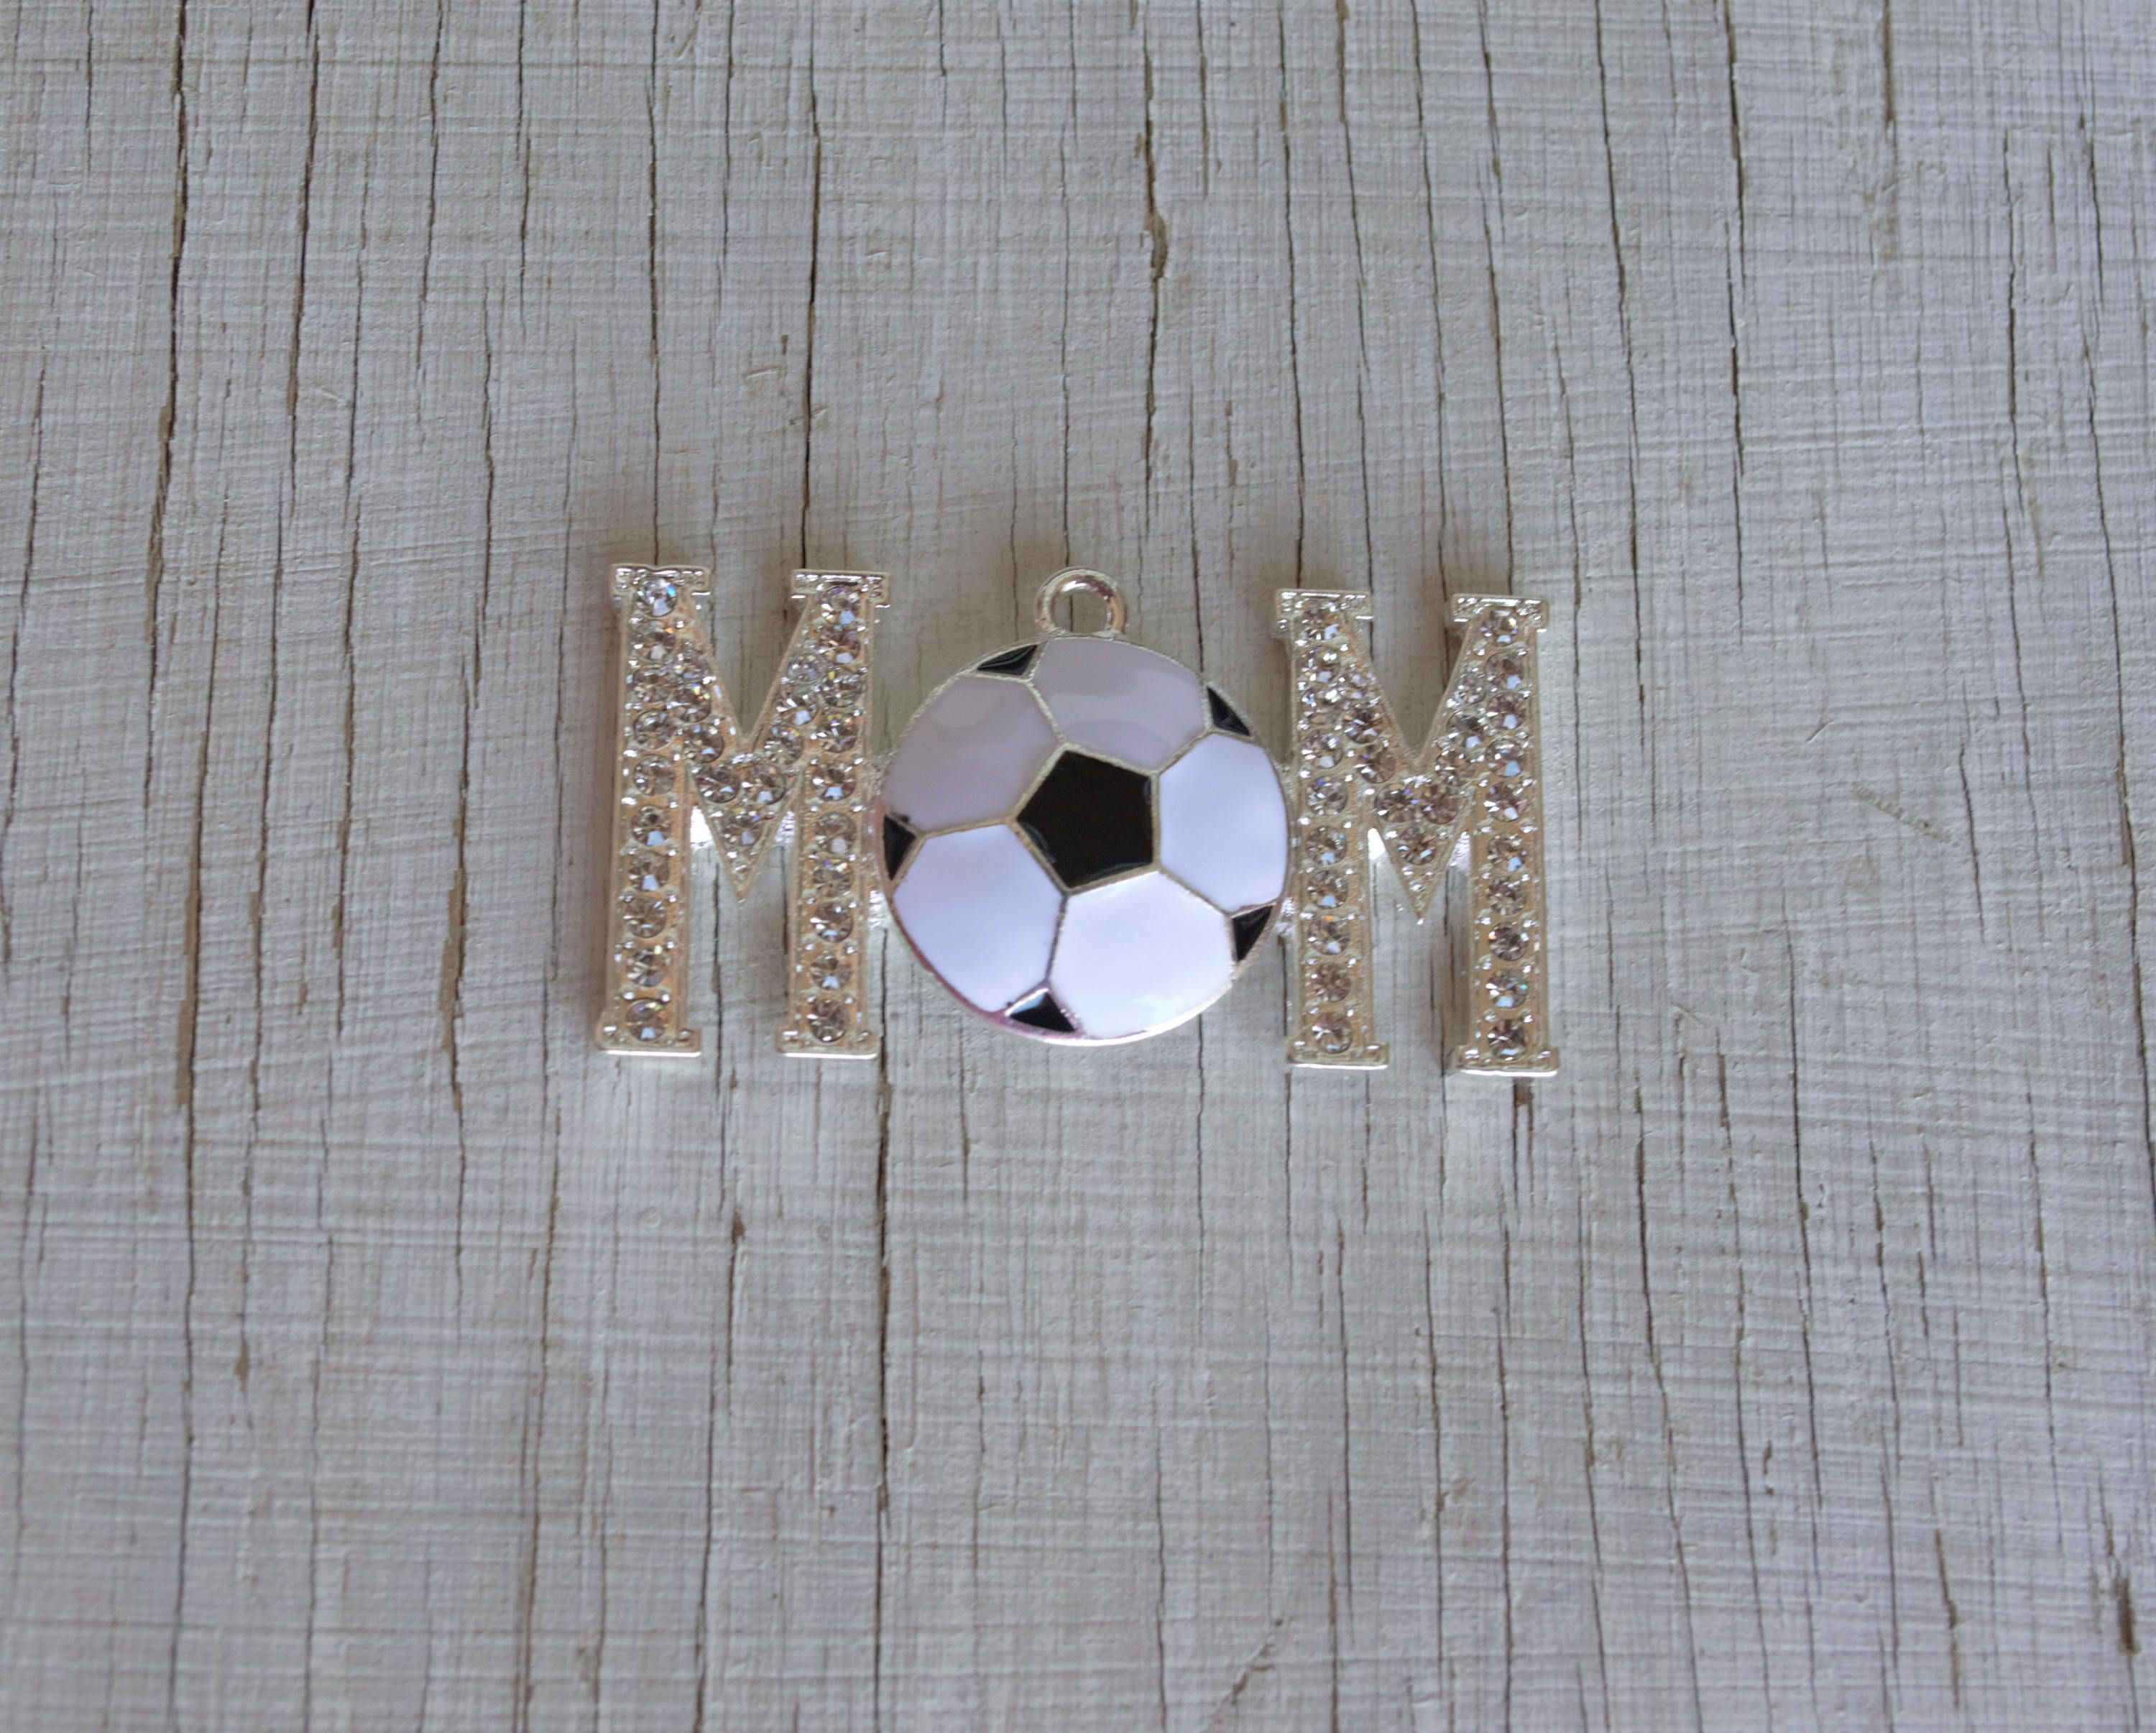 jingle necklace claire long soccer pendant s layered bell